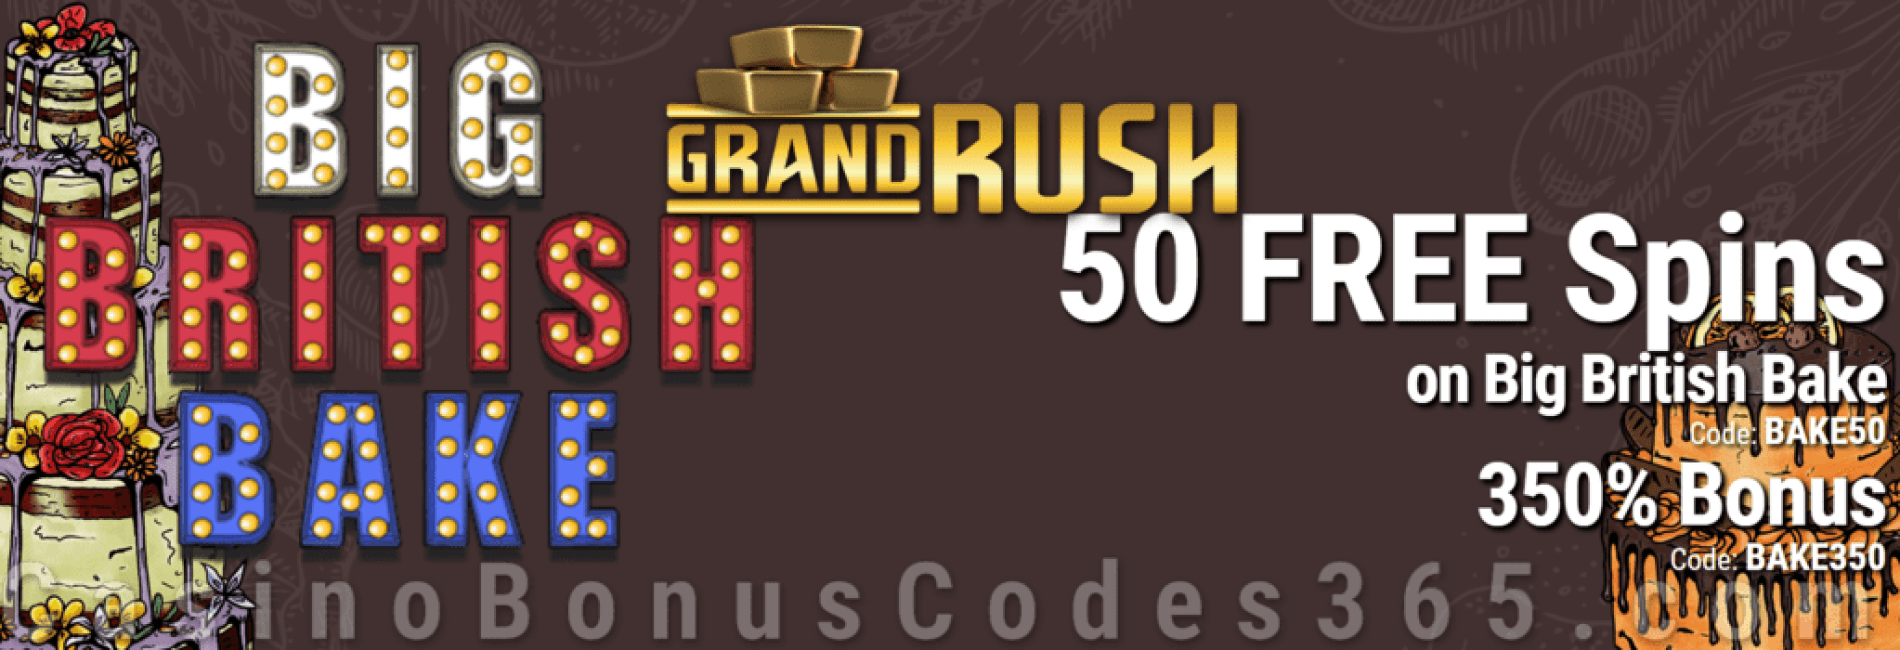 Grand Rush 50 FREE Spins on Saucify Big British Bake plus 350% Match Bonus Welcome Package